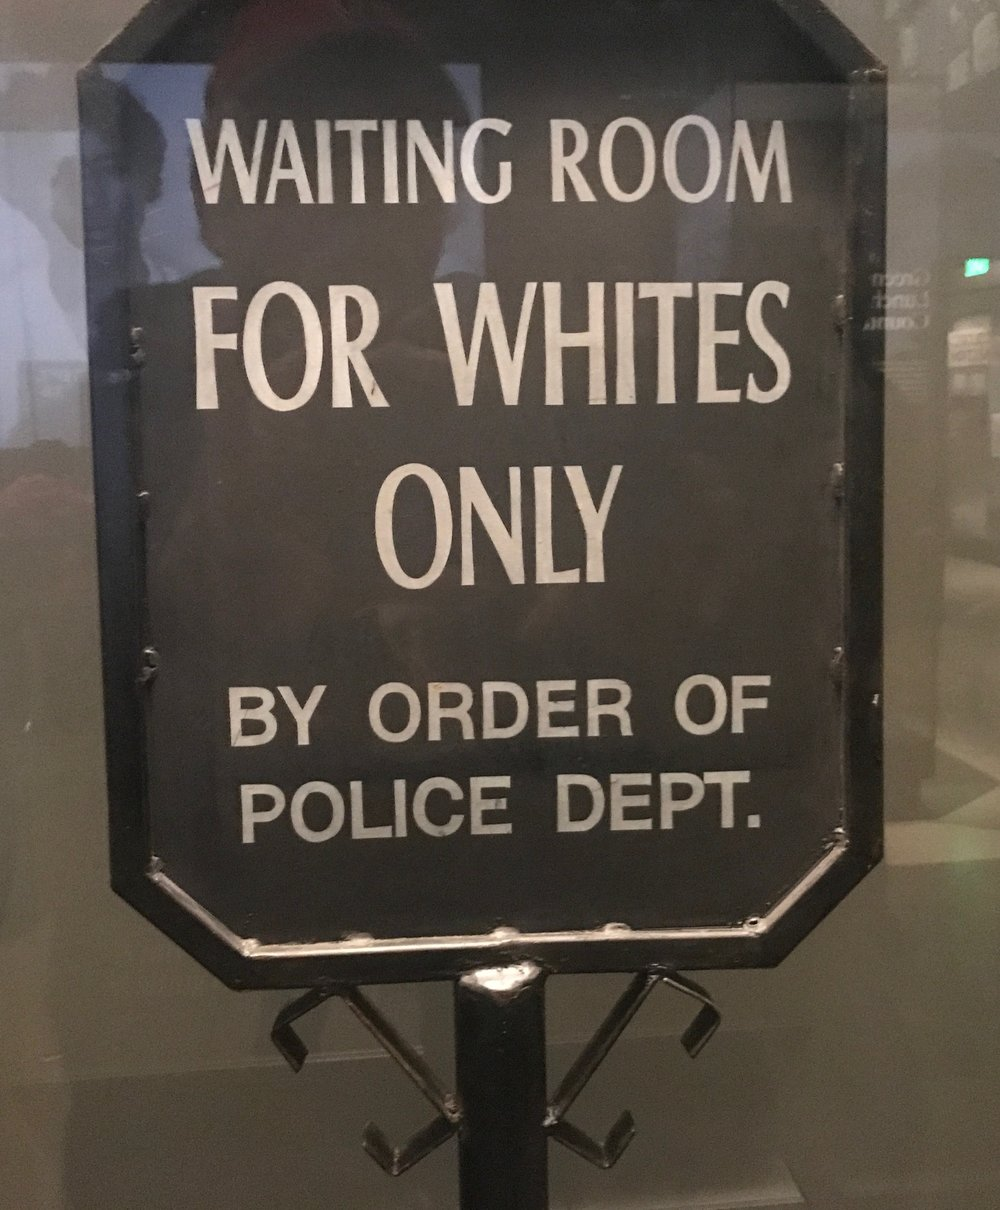 A sign from the Jim Crow South on display at the National Museum of African American History and Culture in Washington, DC.